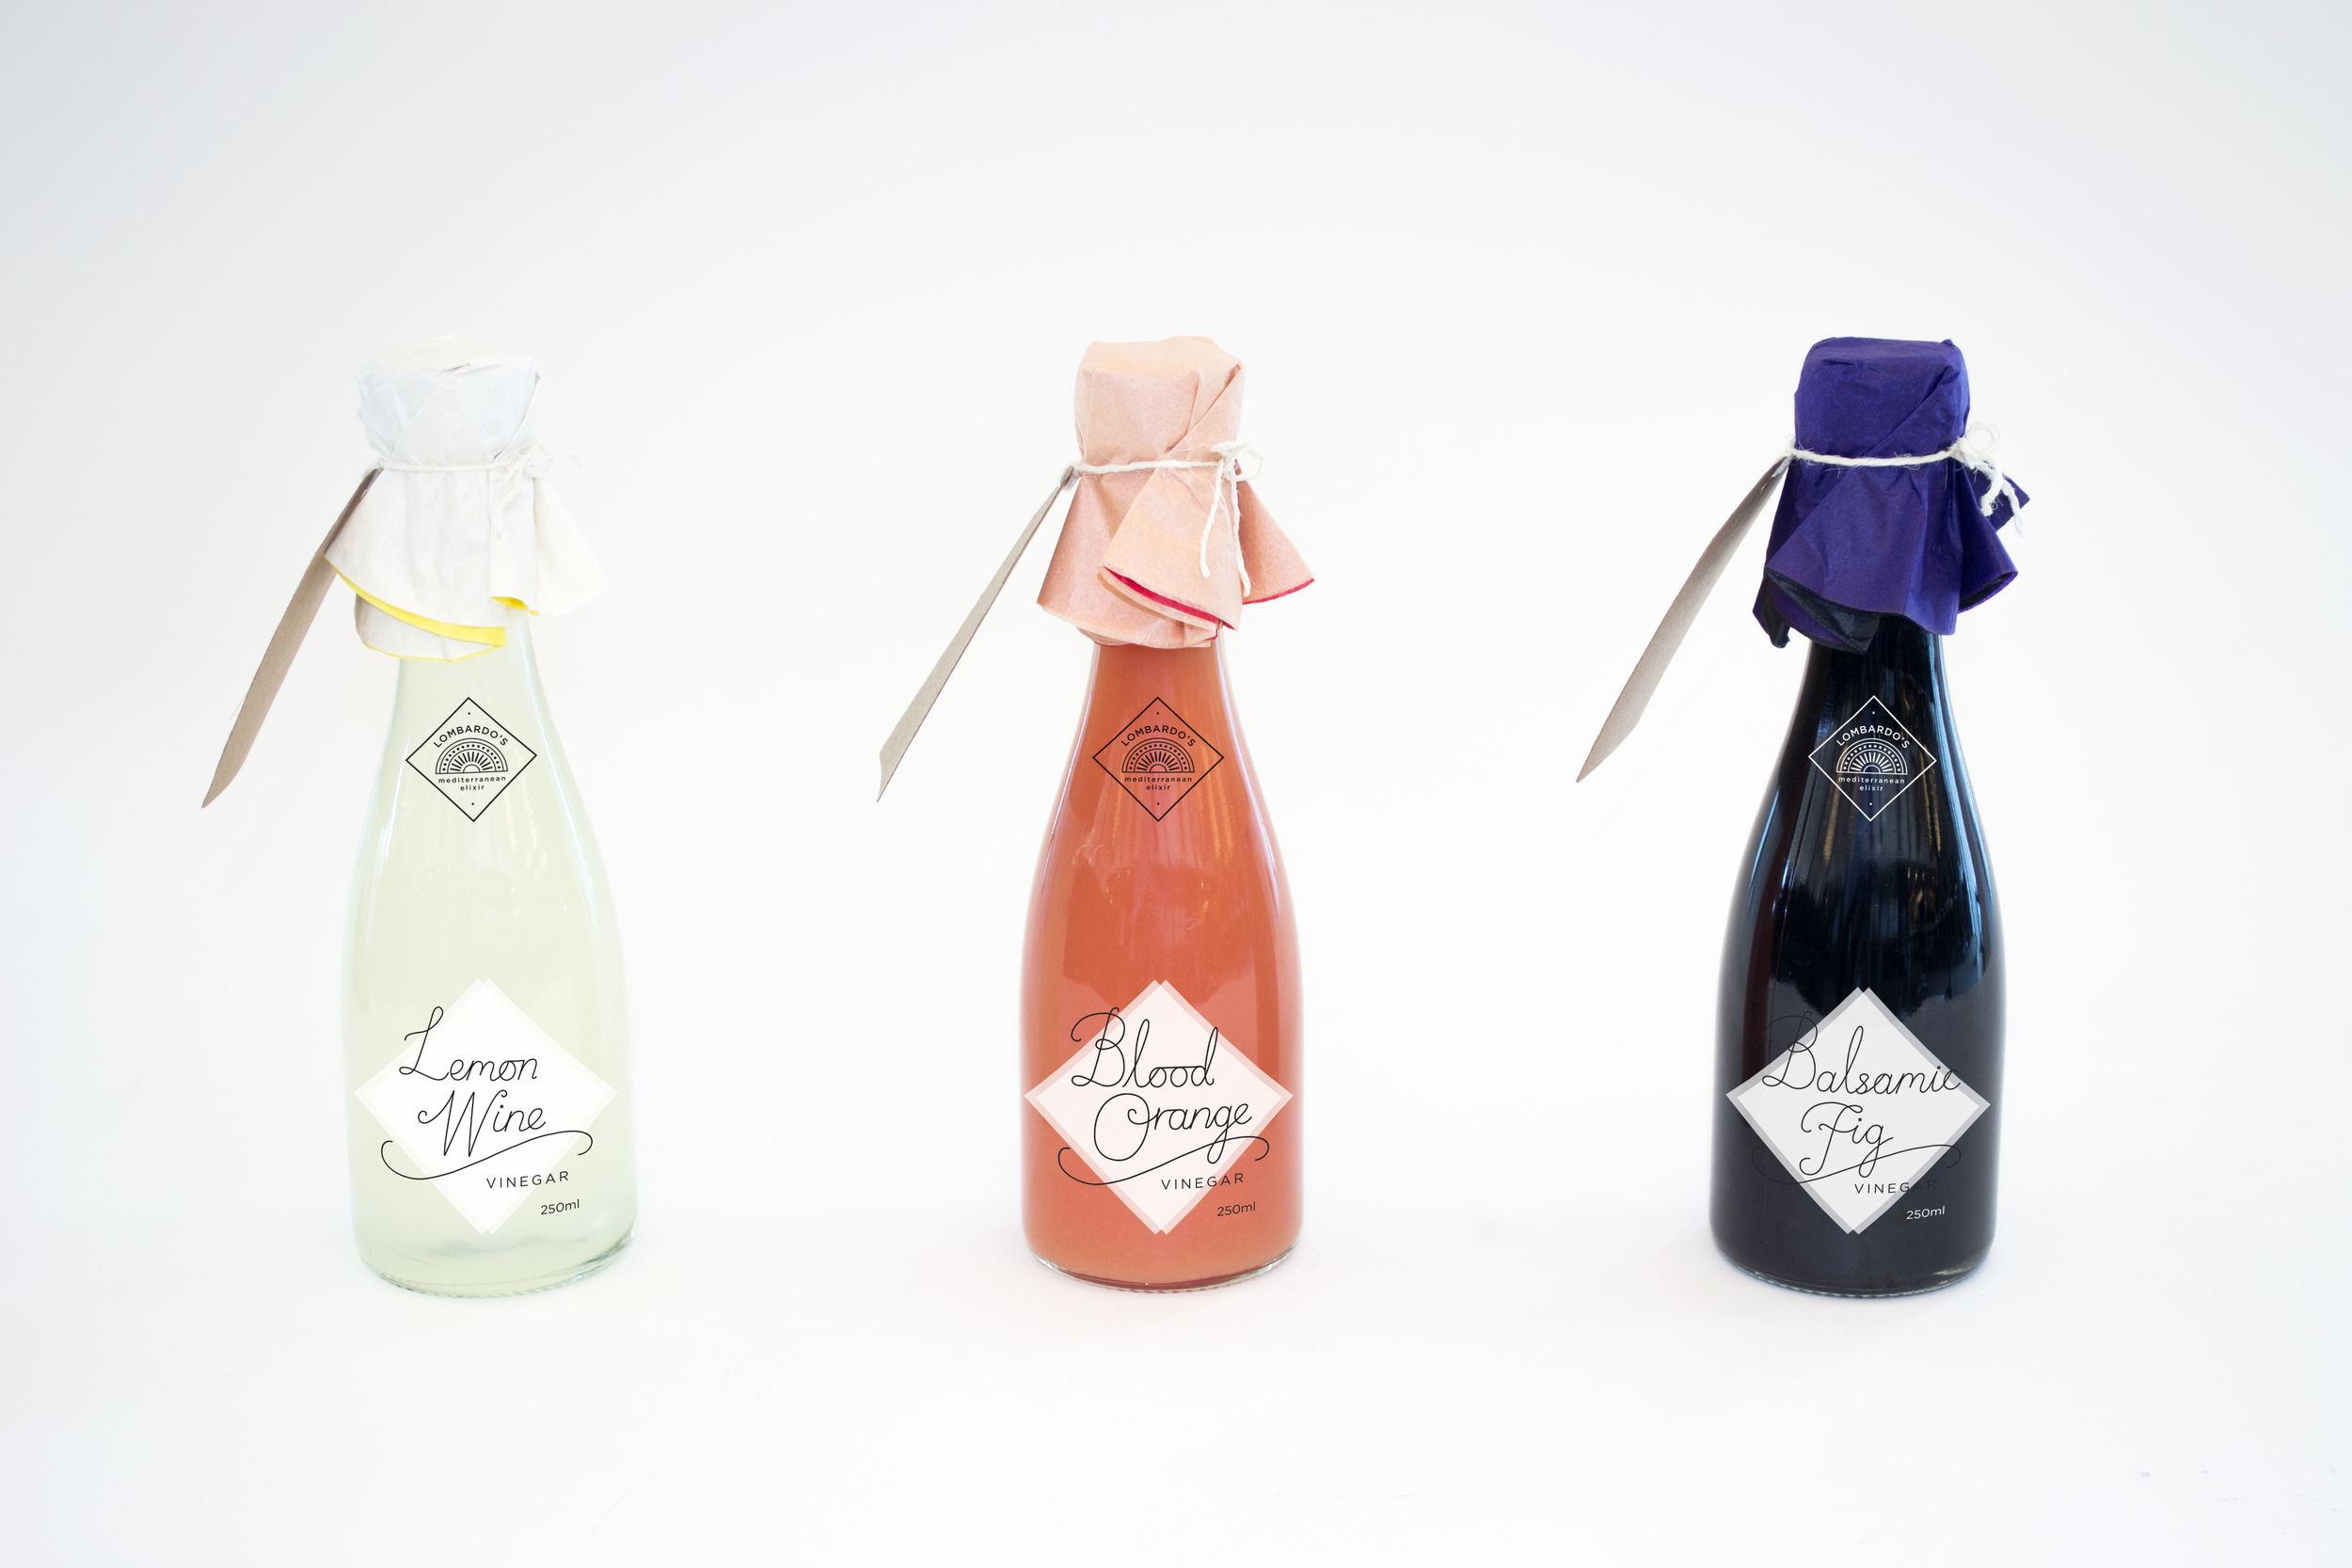 Lombardo's-Fruit-Vinegar-Food-Packaging-Photos